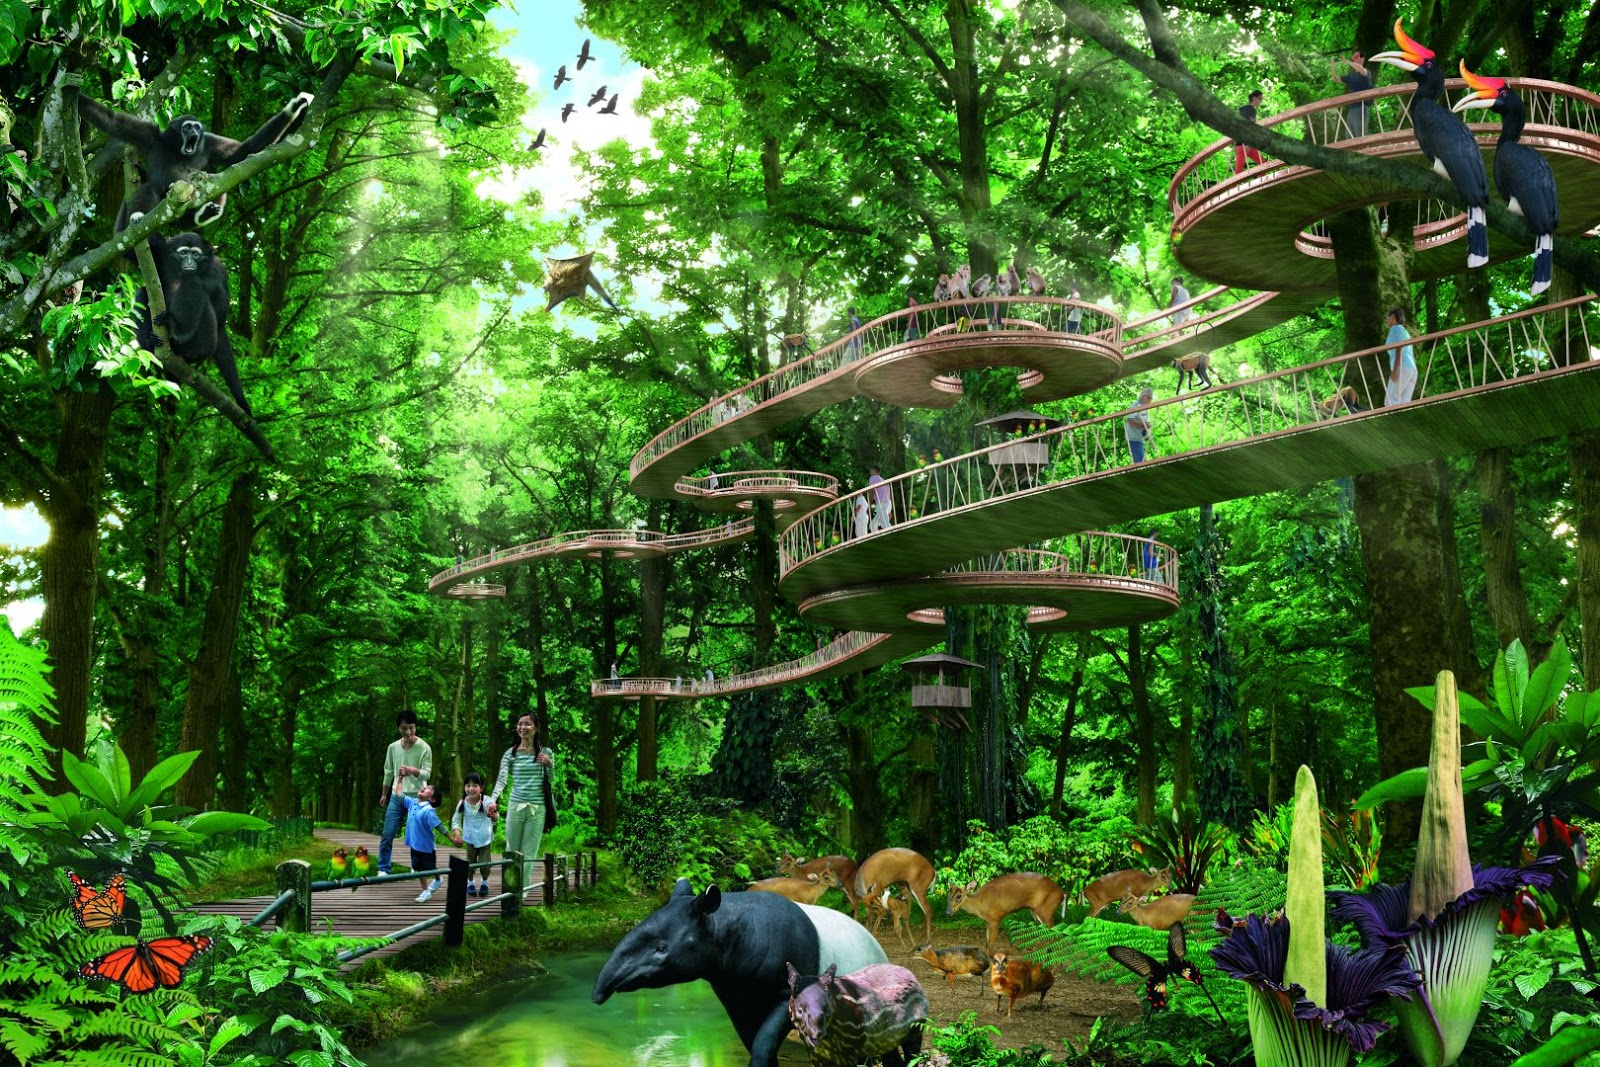 Mandai to feature new 'immersive zoo-type experience'